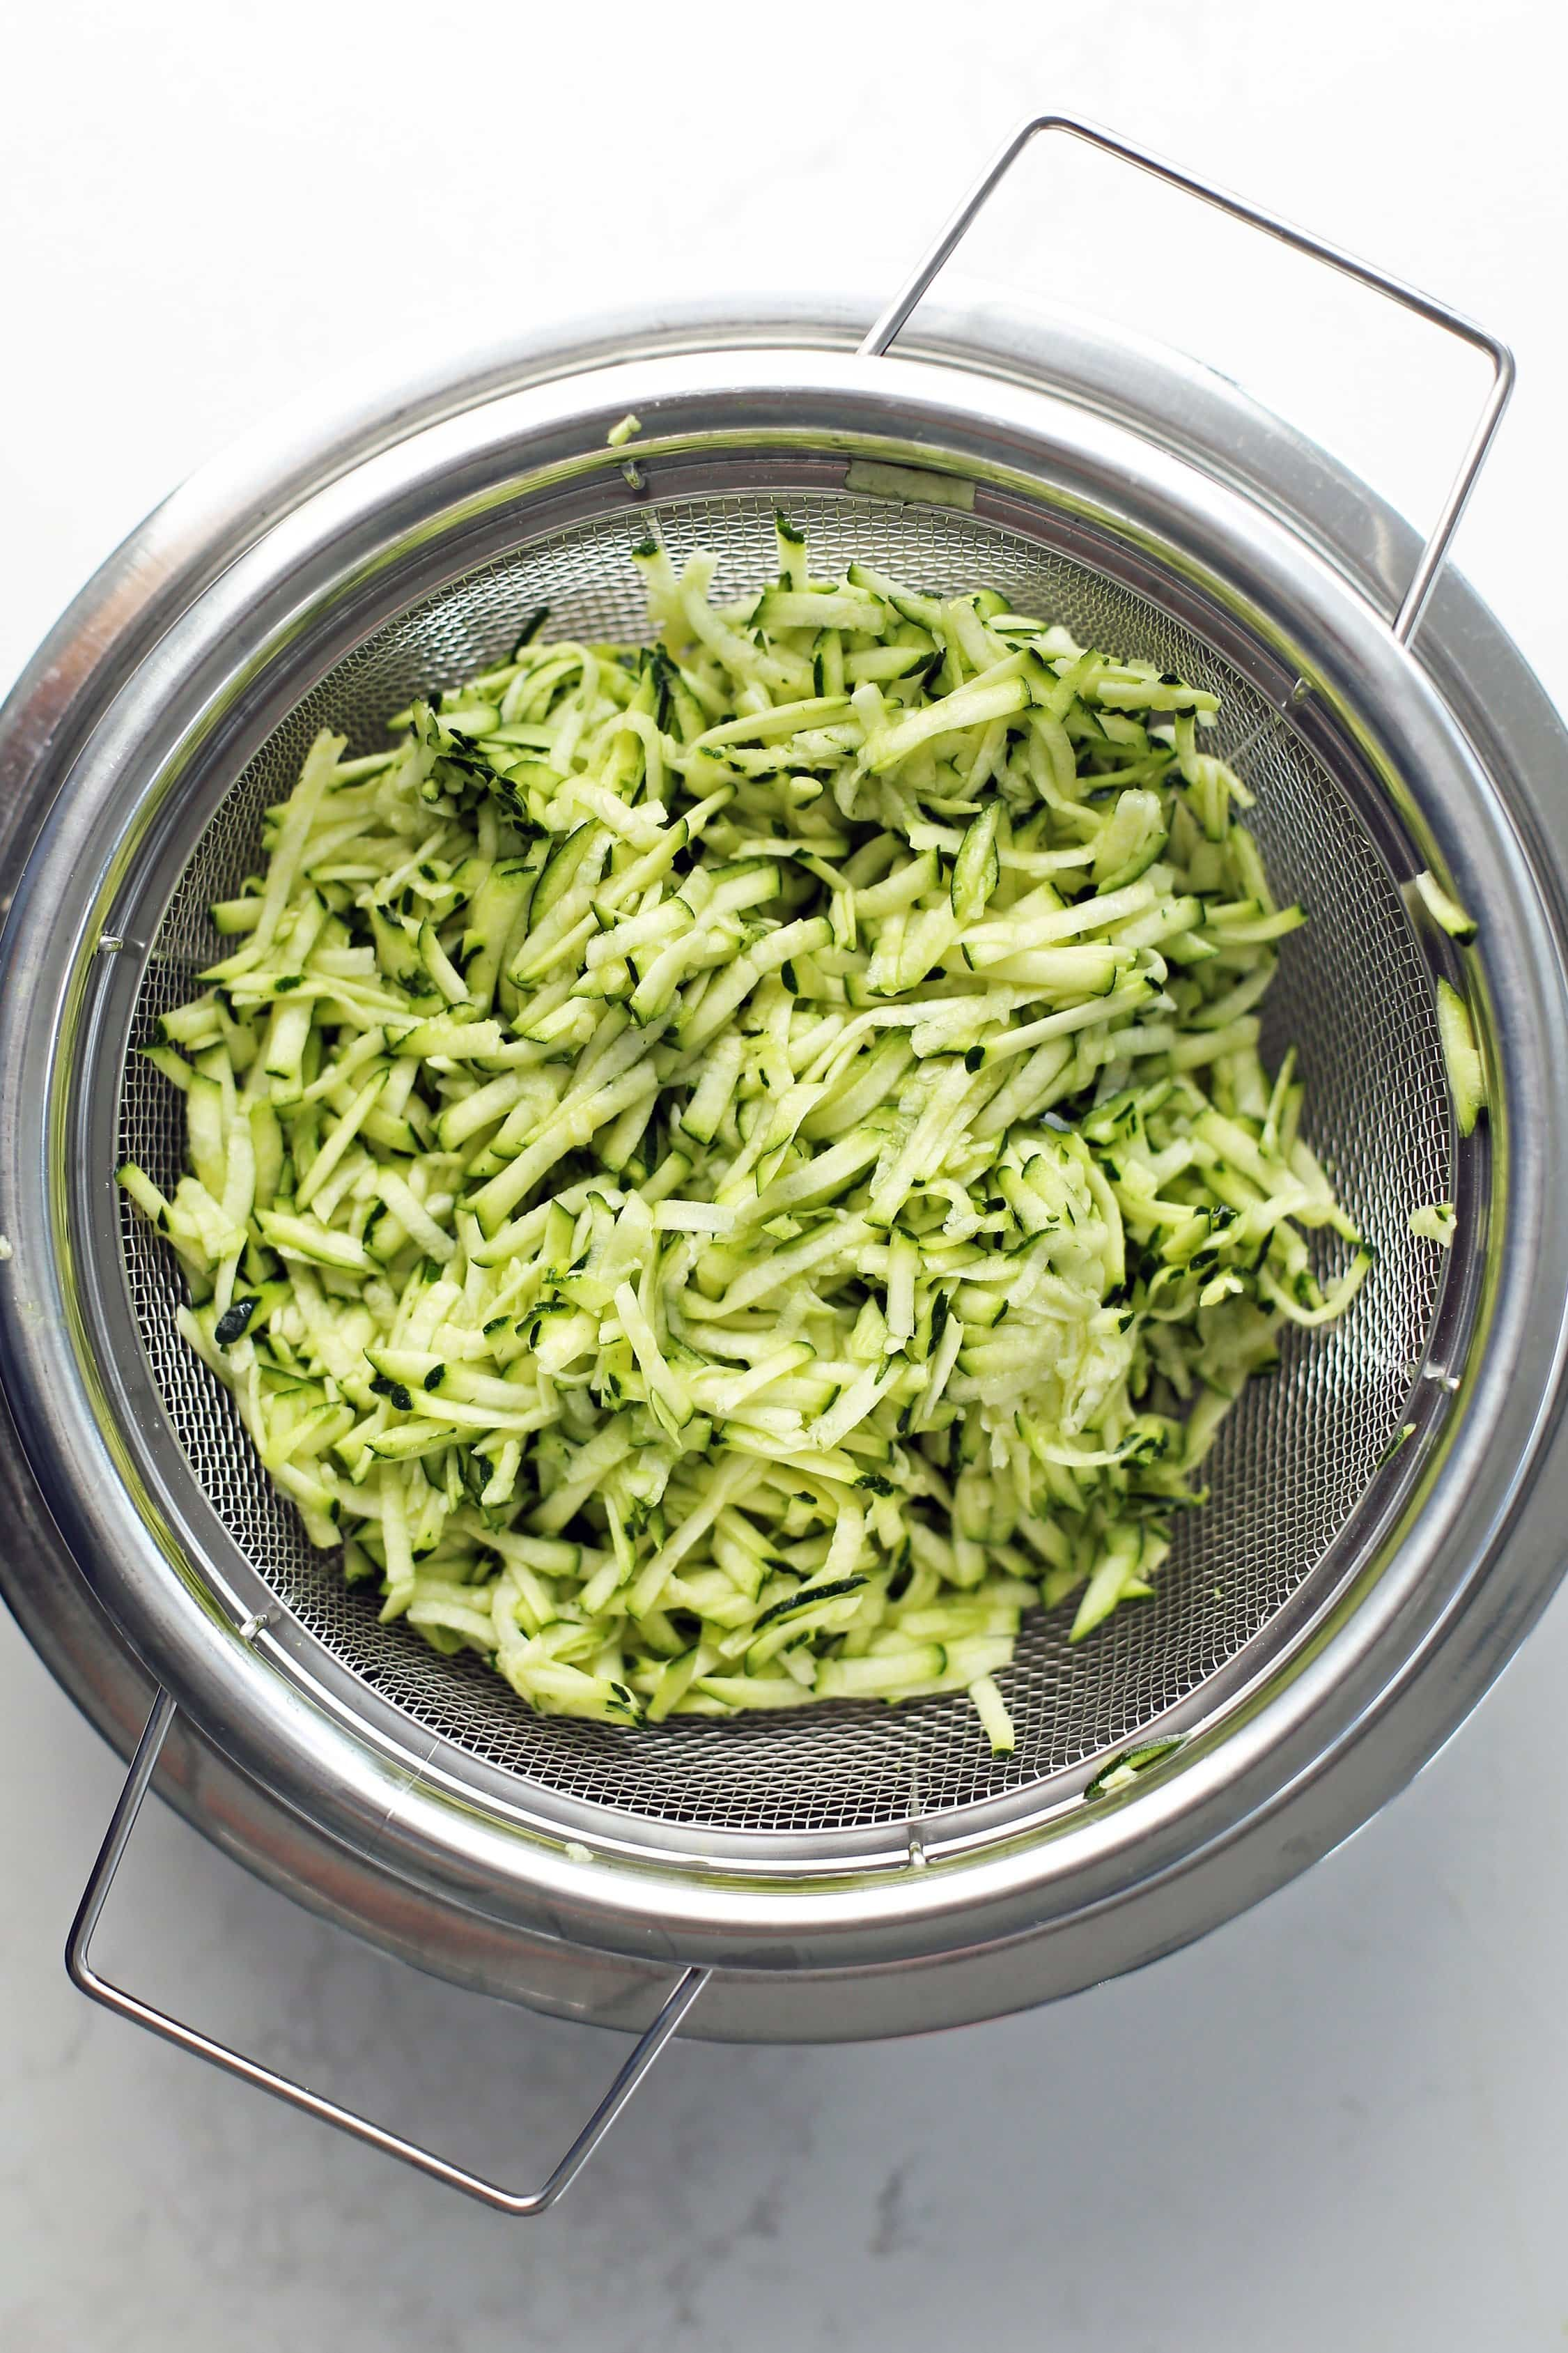 Grated zucchini in a metal mesh strainer with a stainless steel bowl placed below it.